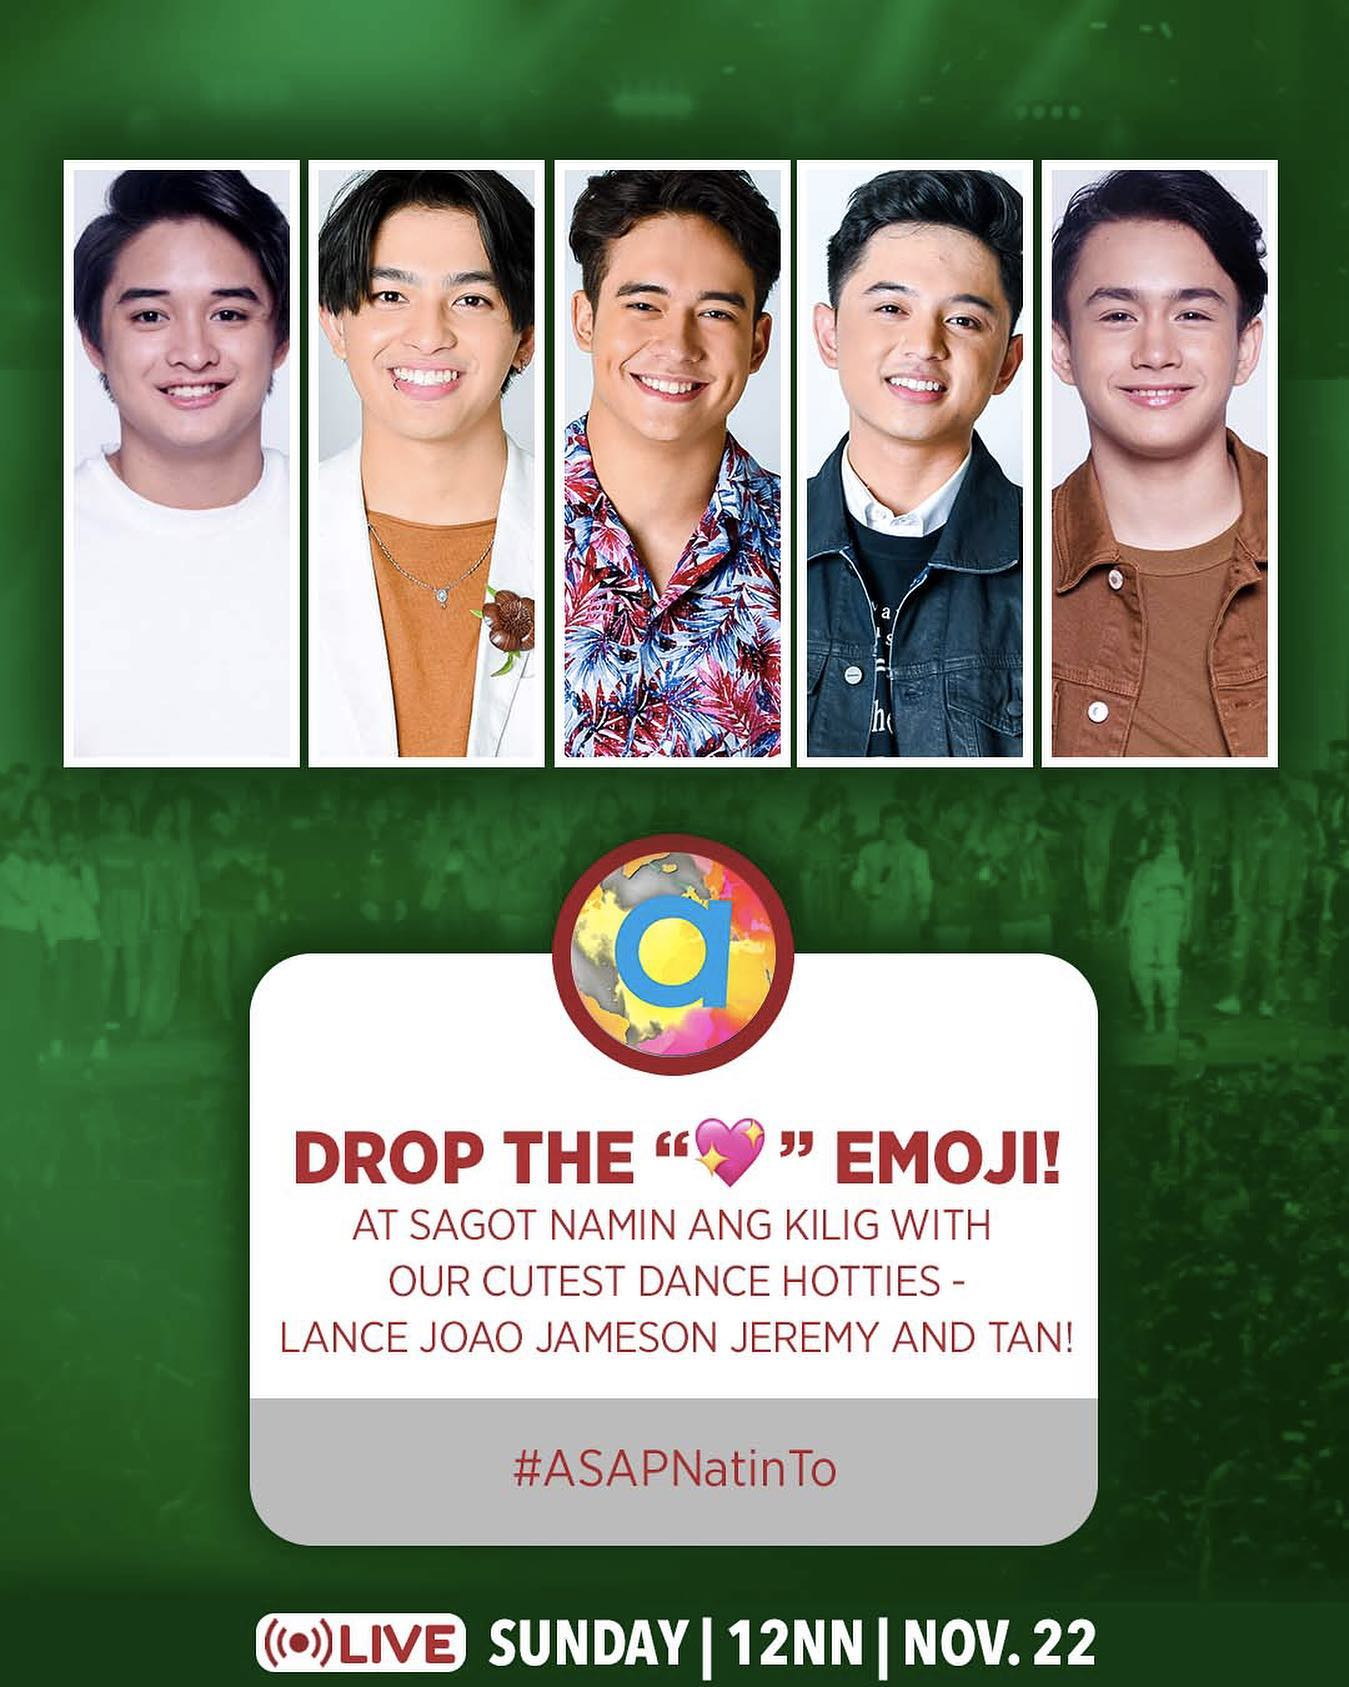 ASAP Natin To spreads the positivity with world class performances this Sunday 3